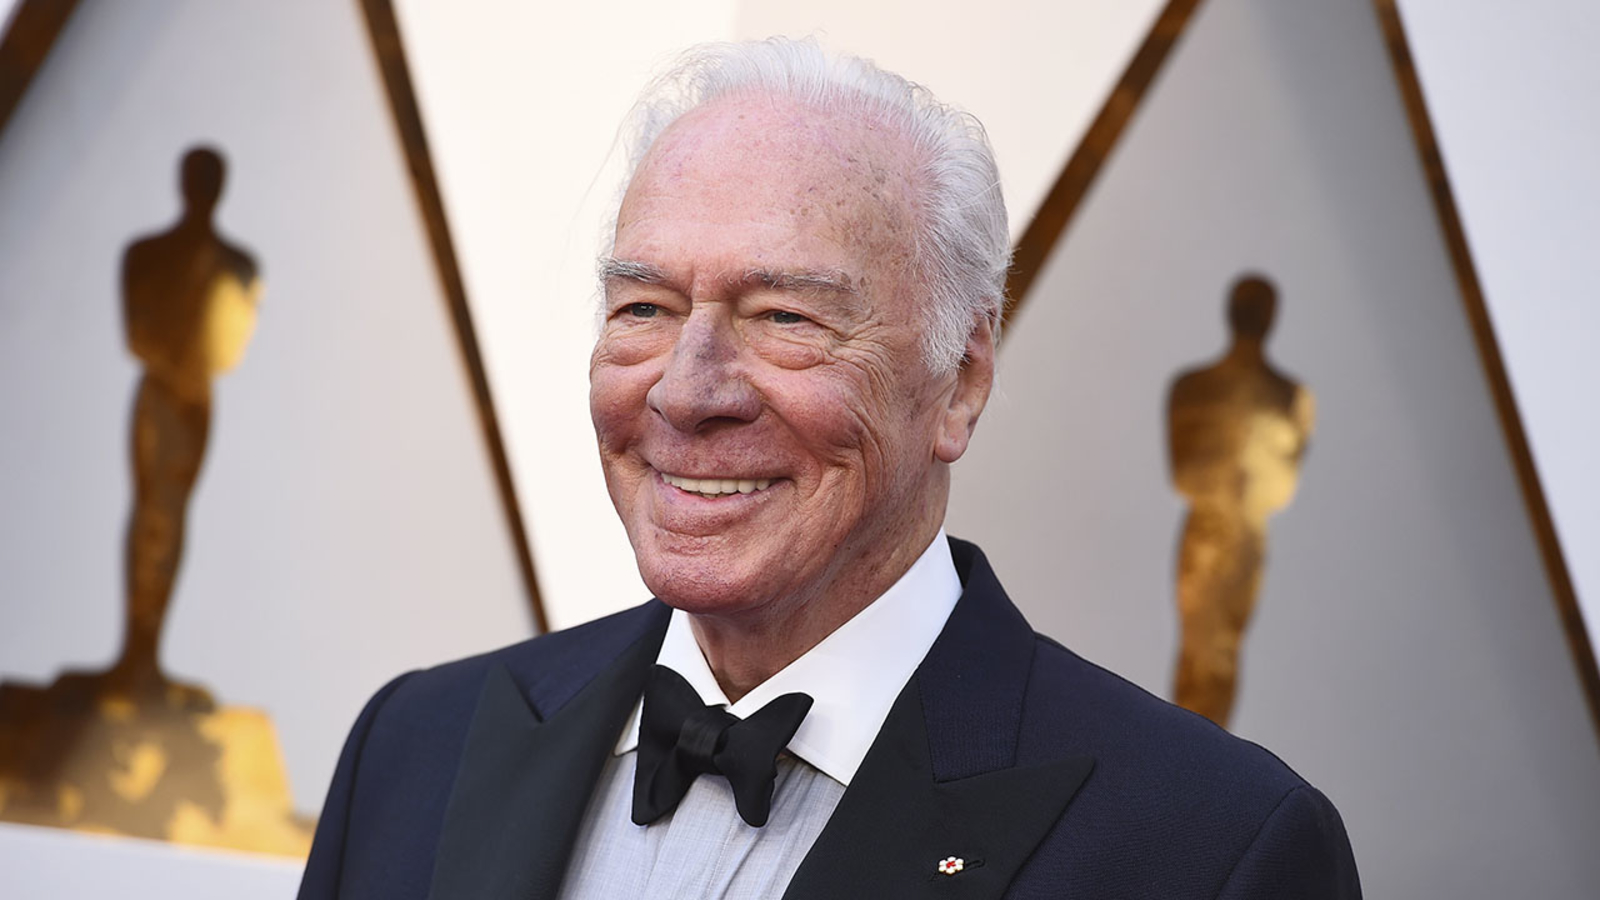 Christopher Plummer, Academy Award winner known for 'The Sound of Music,' dies at 91